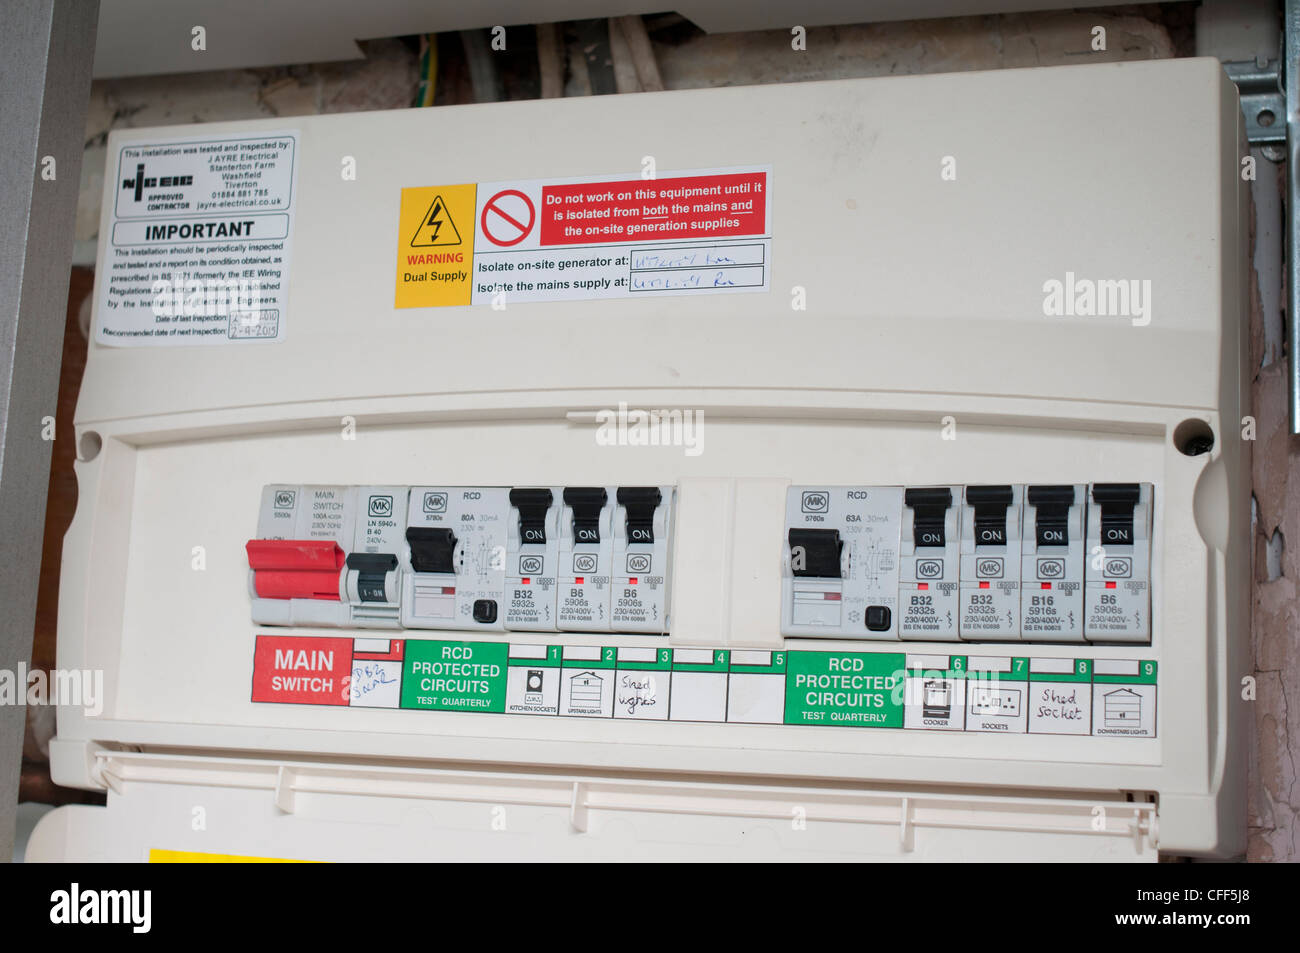 domestic fuse box CFF5J8 domestic fuse box stock photo, royalty free image 43974288 alamy fuse box images at bakdesigns.co